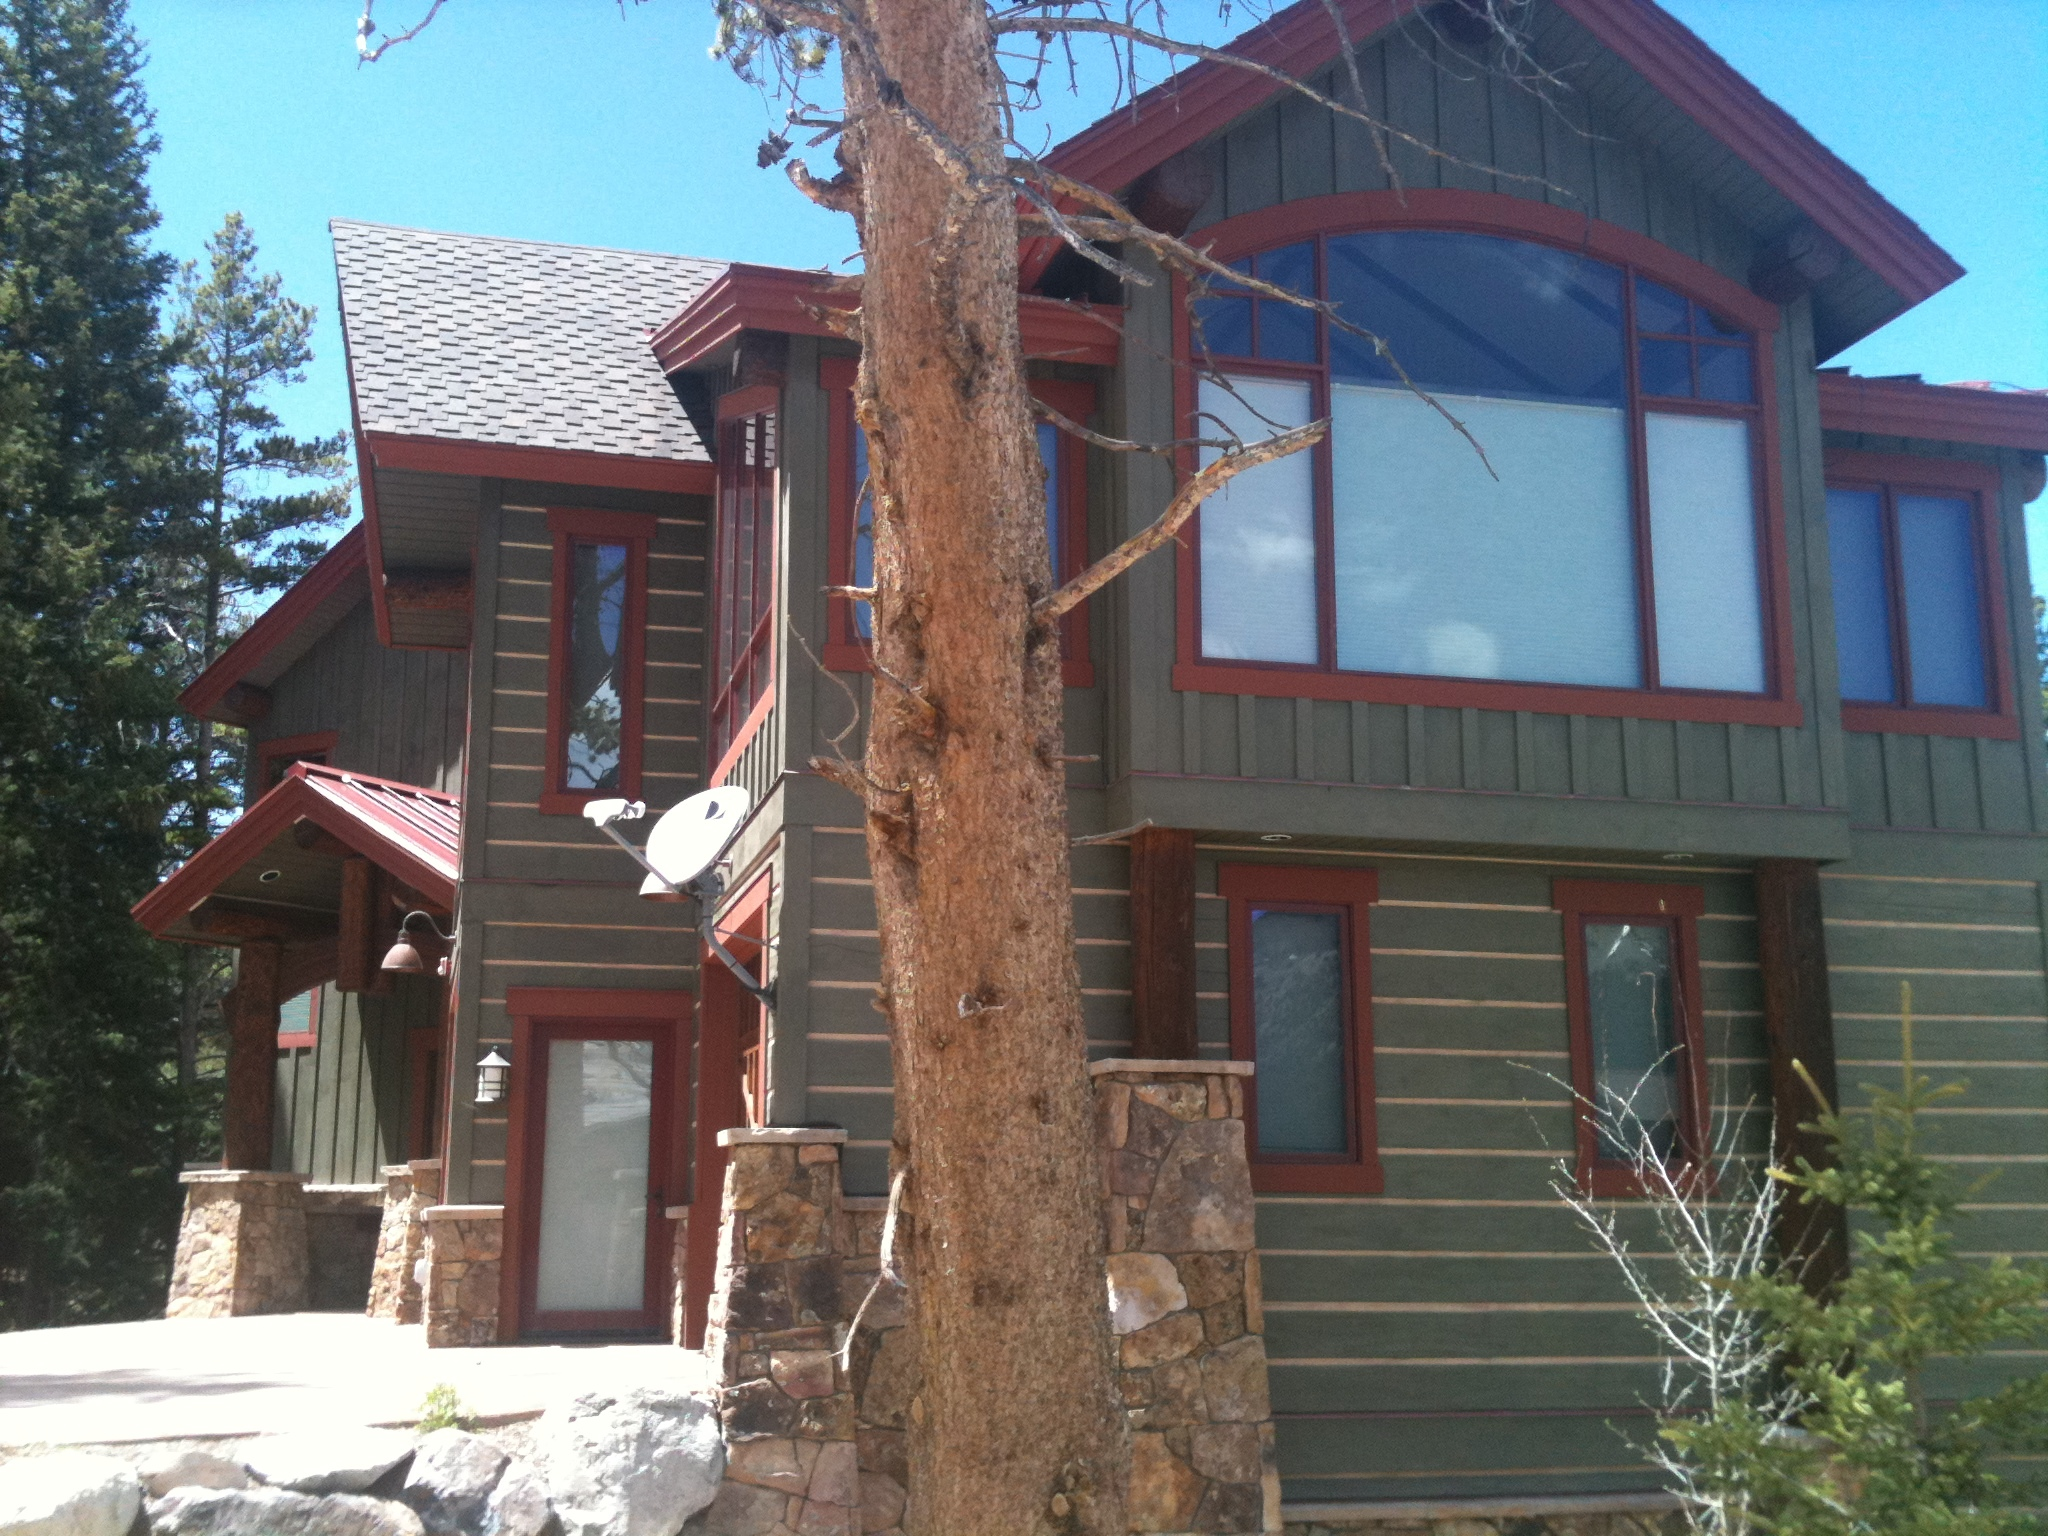 Cabin exterior stain paint colors painting log cabin exterior colors